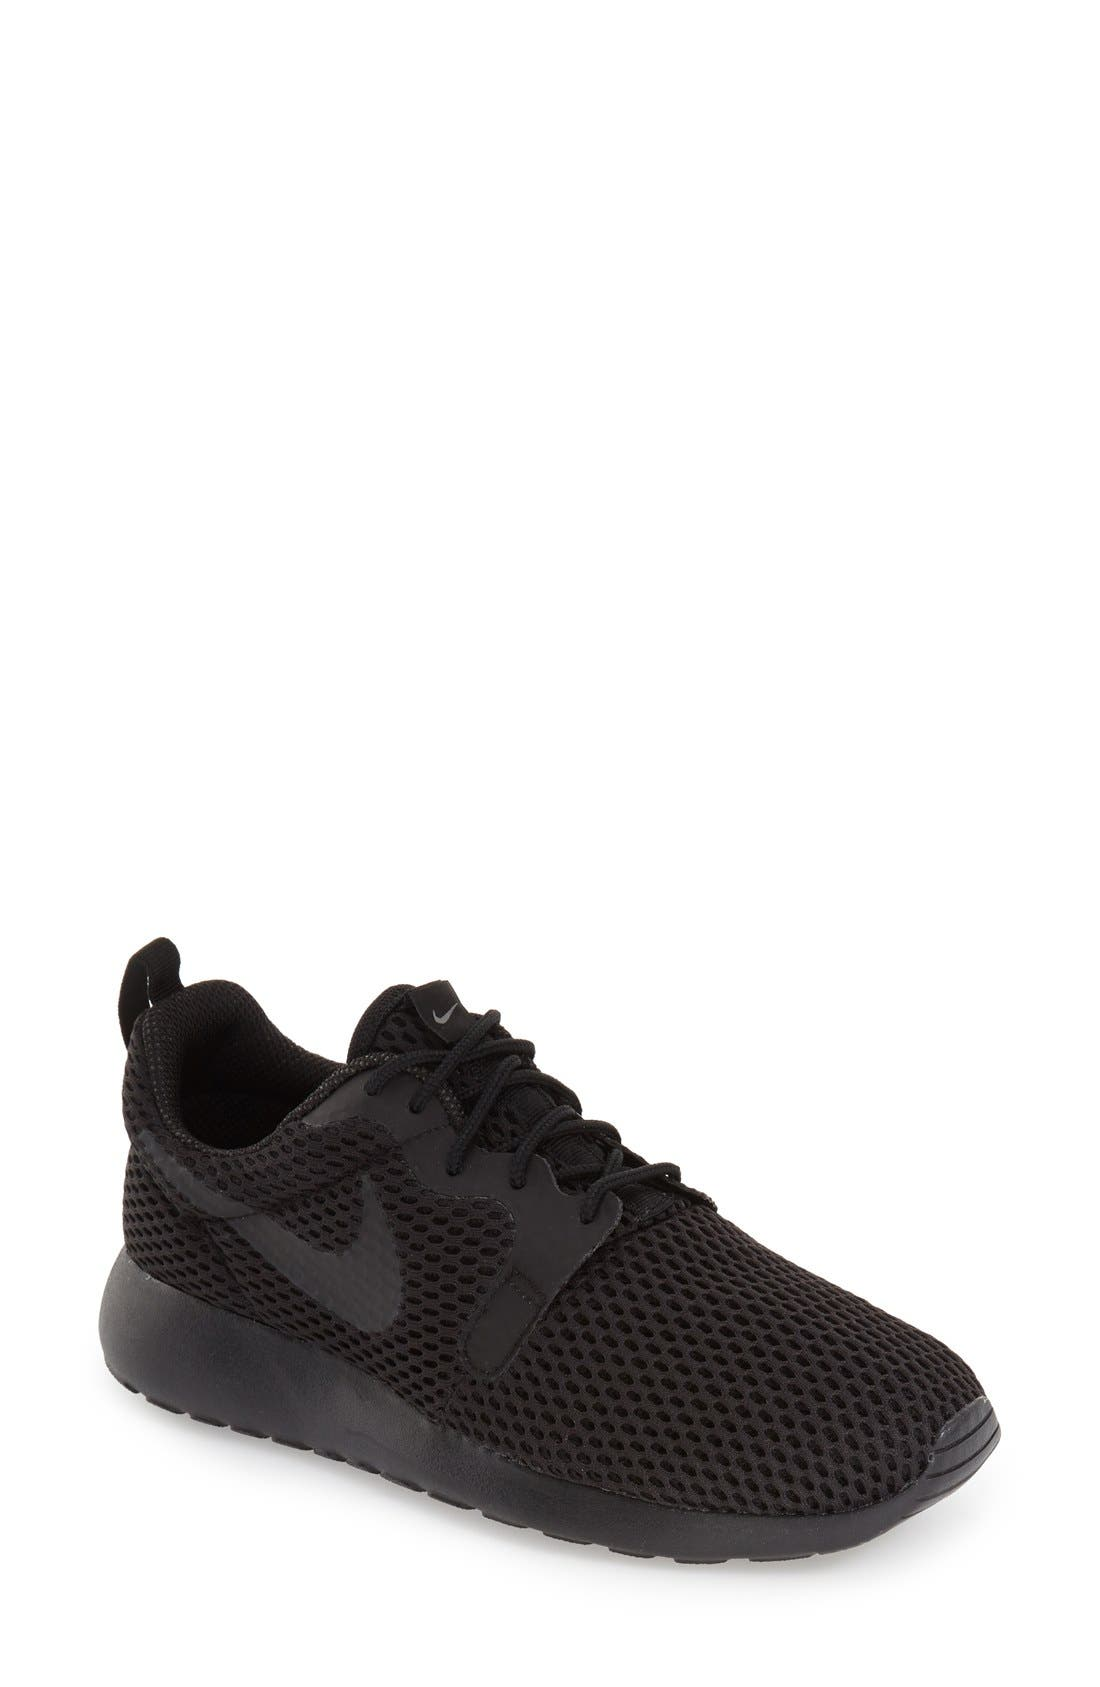 NIKE,                             'Roshe One Hyper Breathe' Sneaker,                             Main thumbnail 1, color,                             001